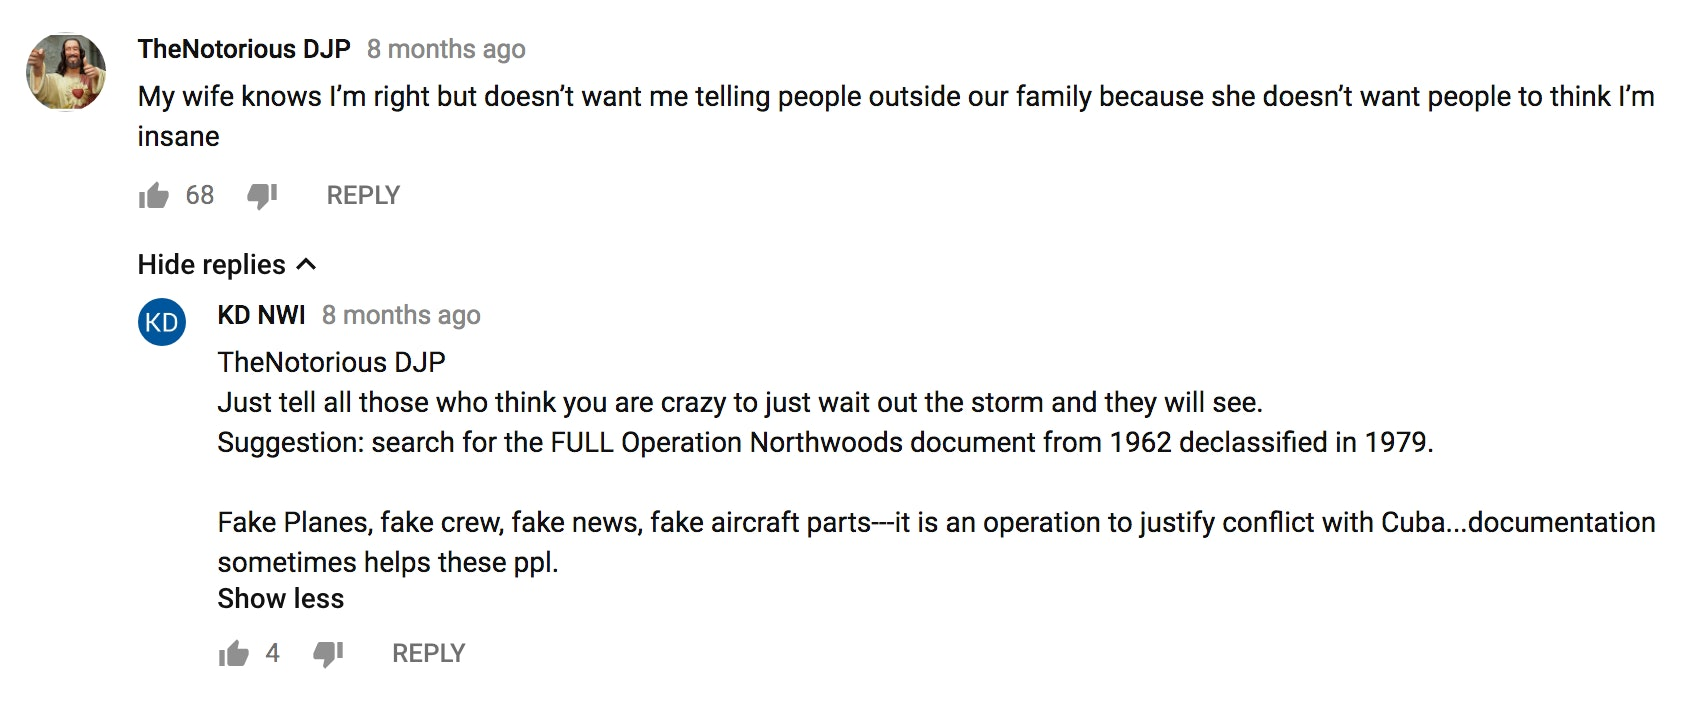 A YouTube comment about QAnon